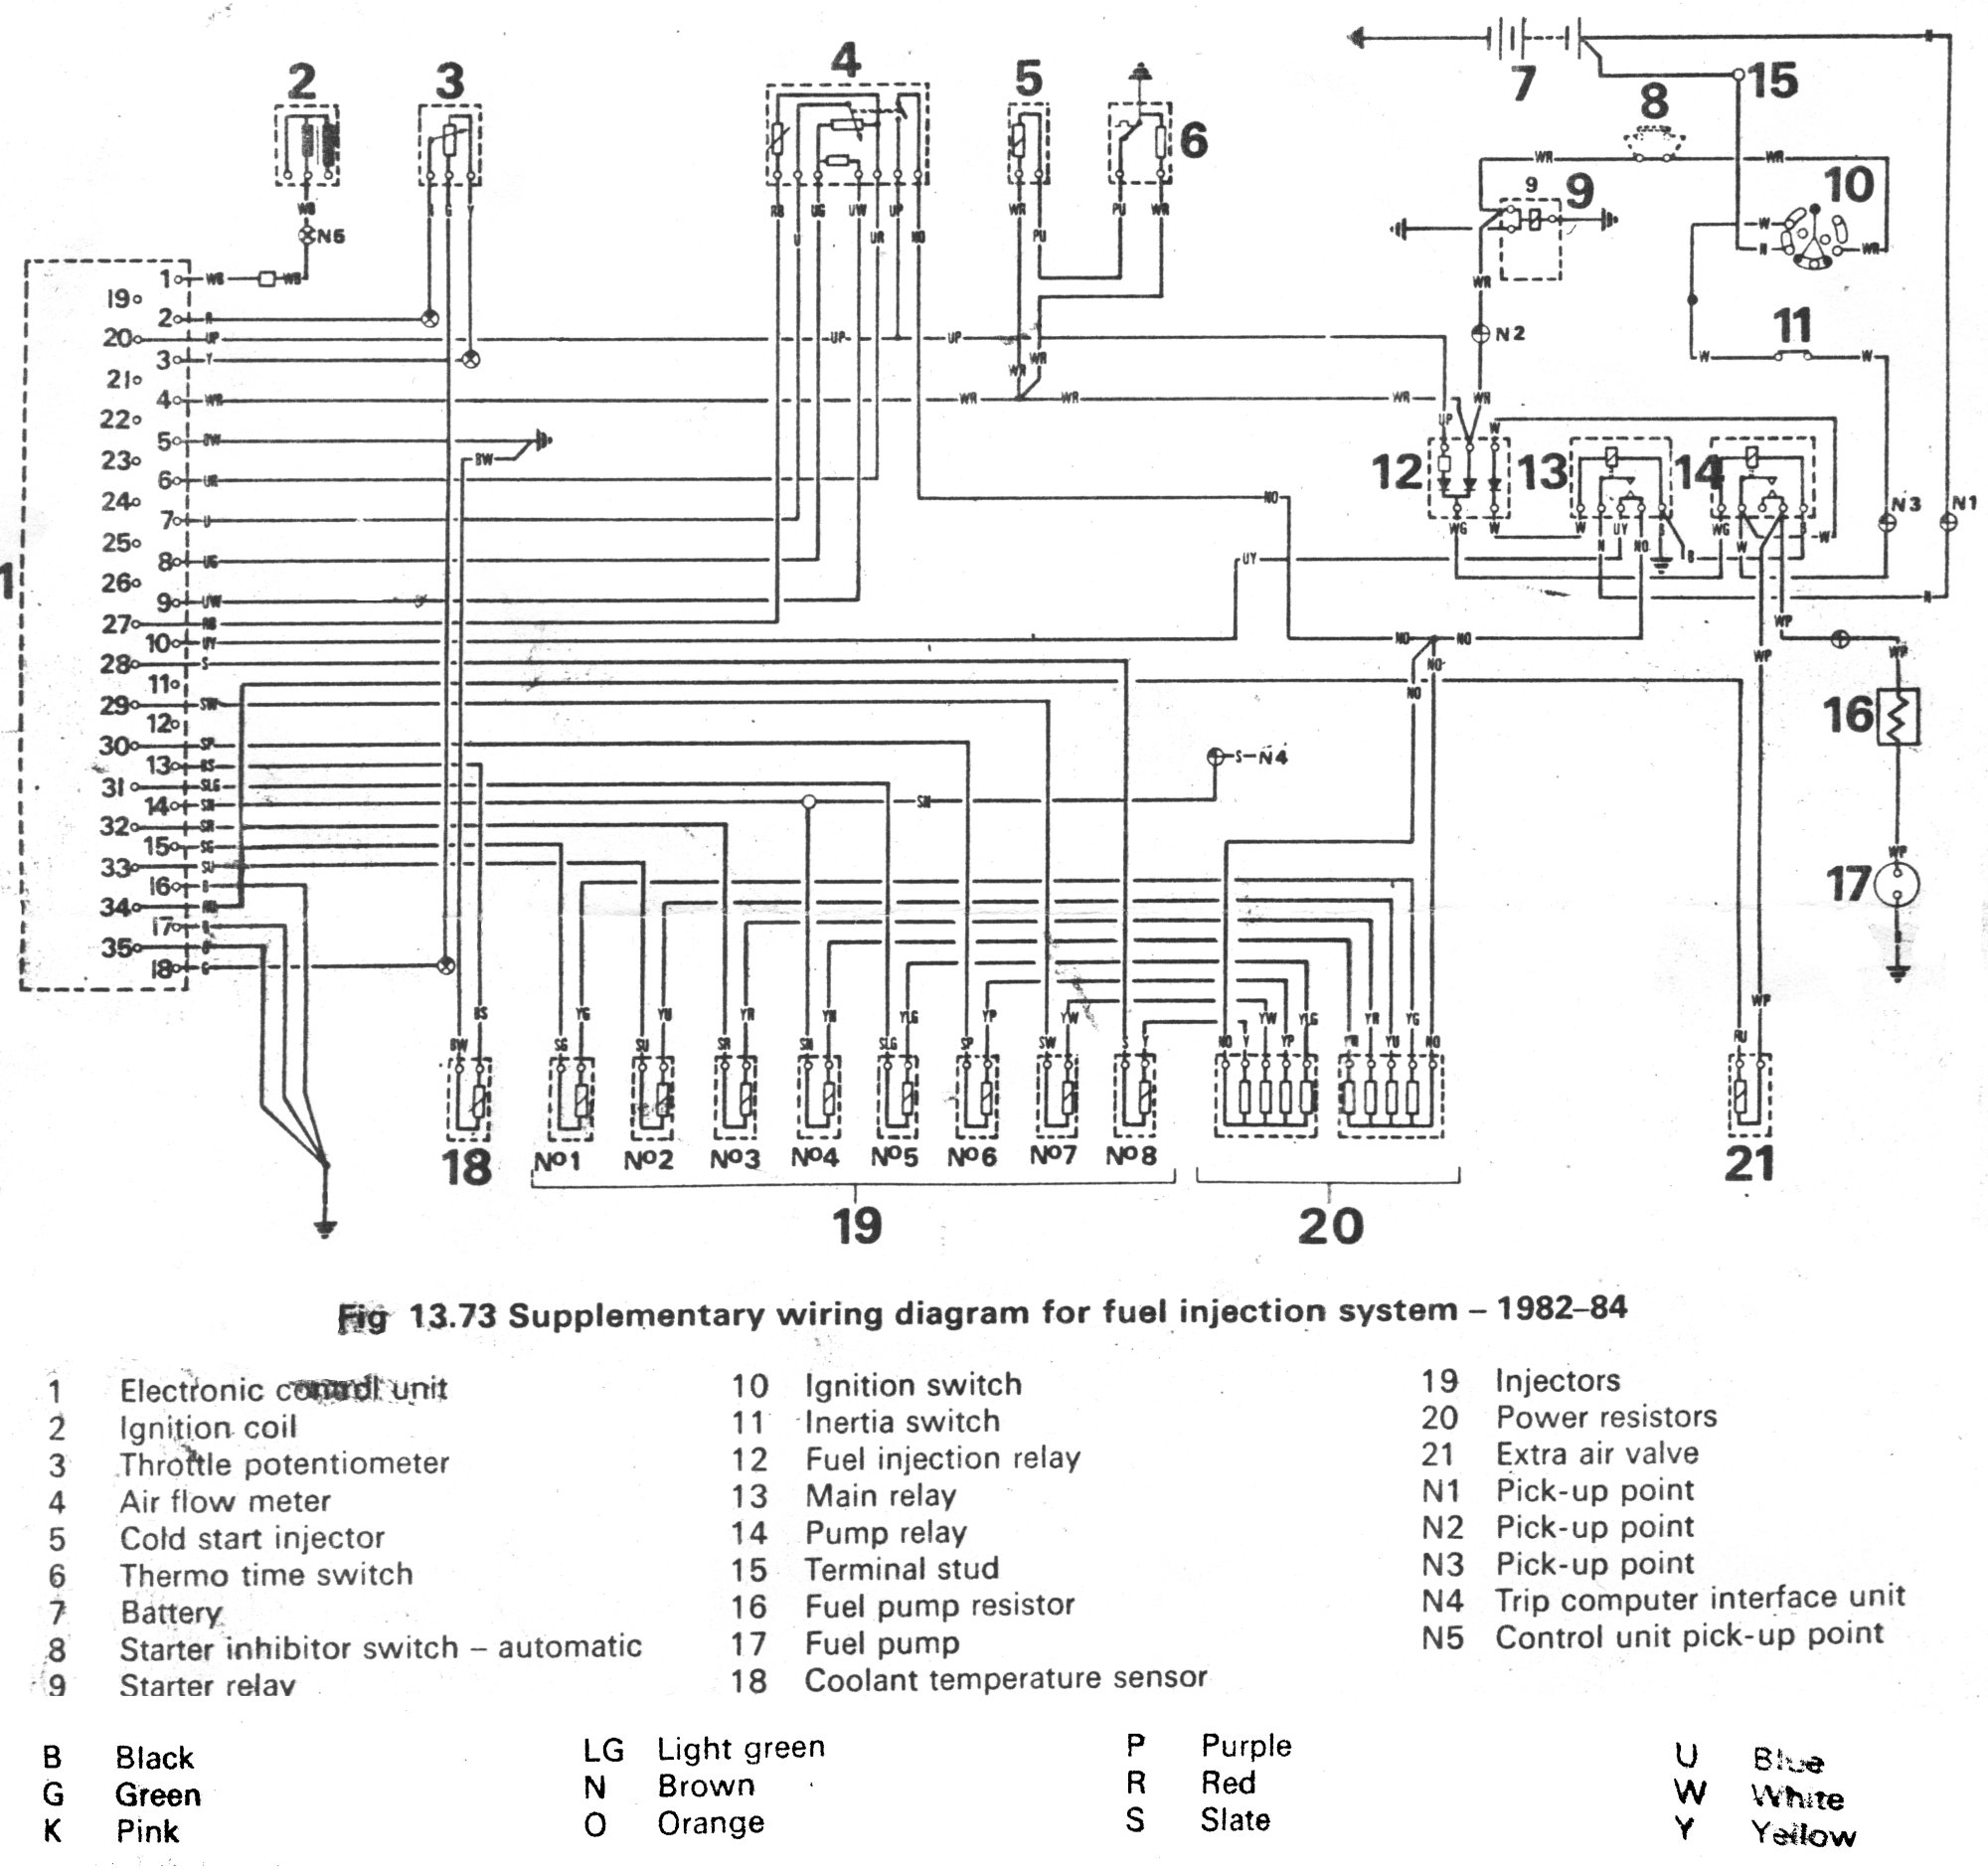 lucas_efi_1982_1984 range rover classic wiring diagram 100 images land rover Blue Sea Fuse Box at mifinder.co